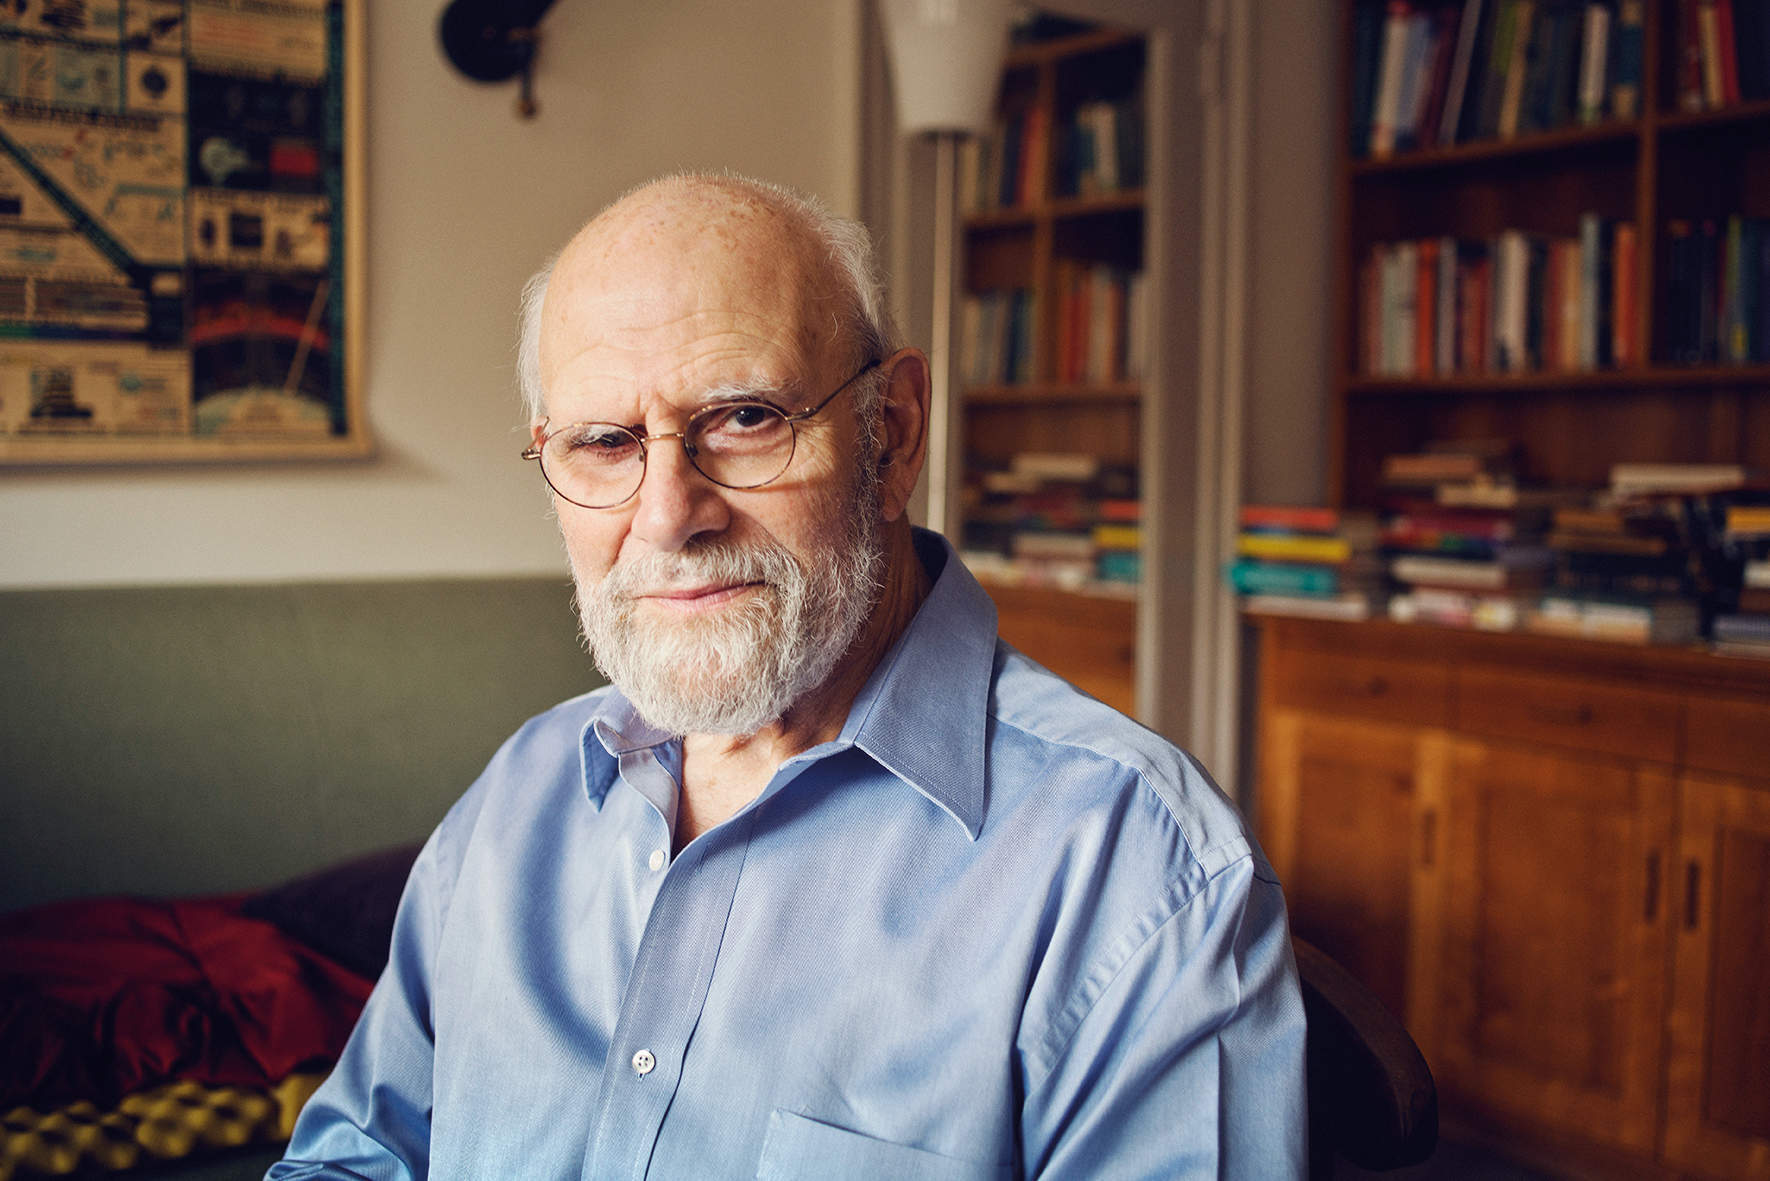 The River of Consciousness looks back on Oliver Sacks's life in writing